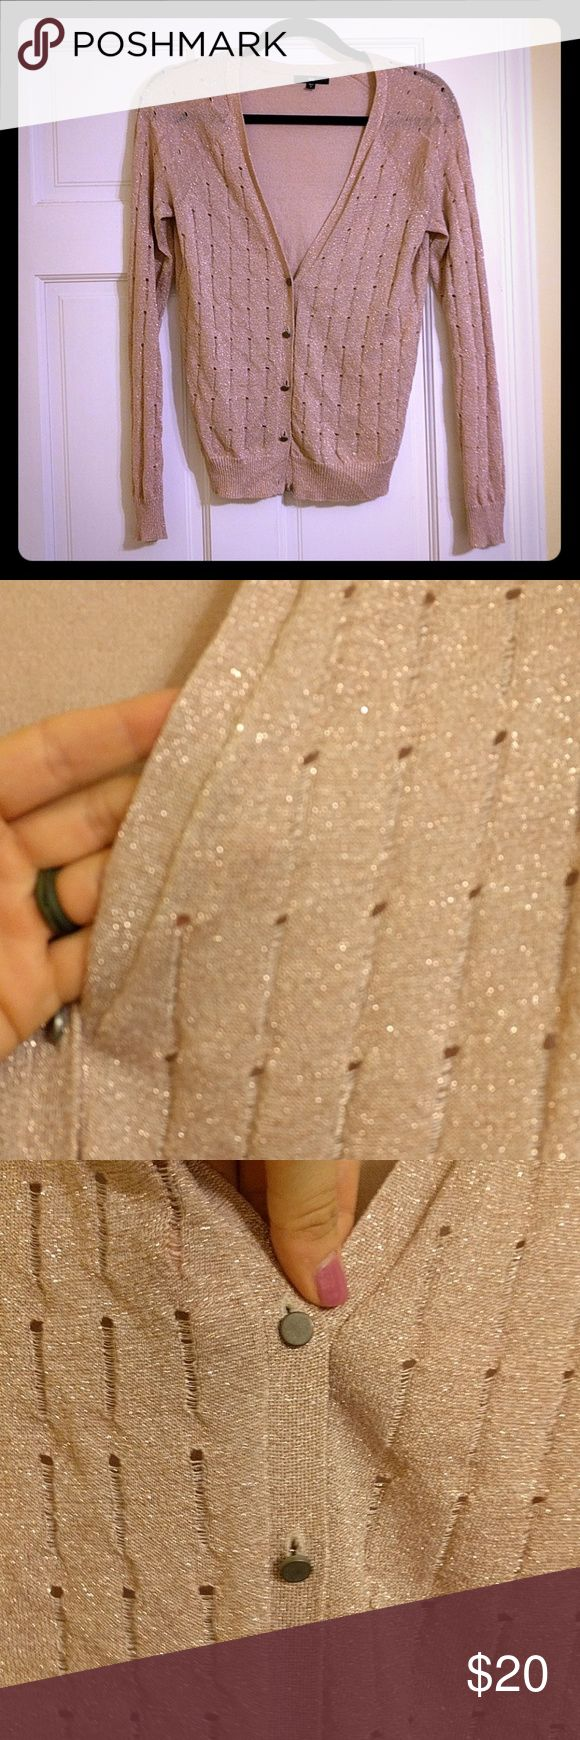 GUC sparkly rose gold cardigan Gorgeous rose gold cardigan excellent used condition. GAP Sweaters Cardigans